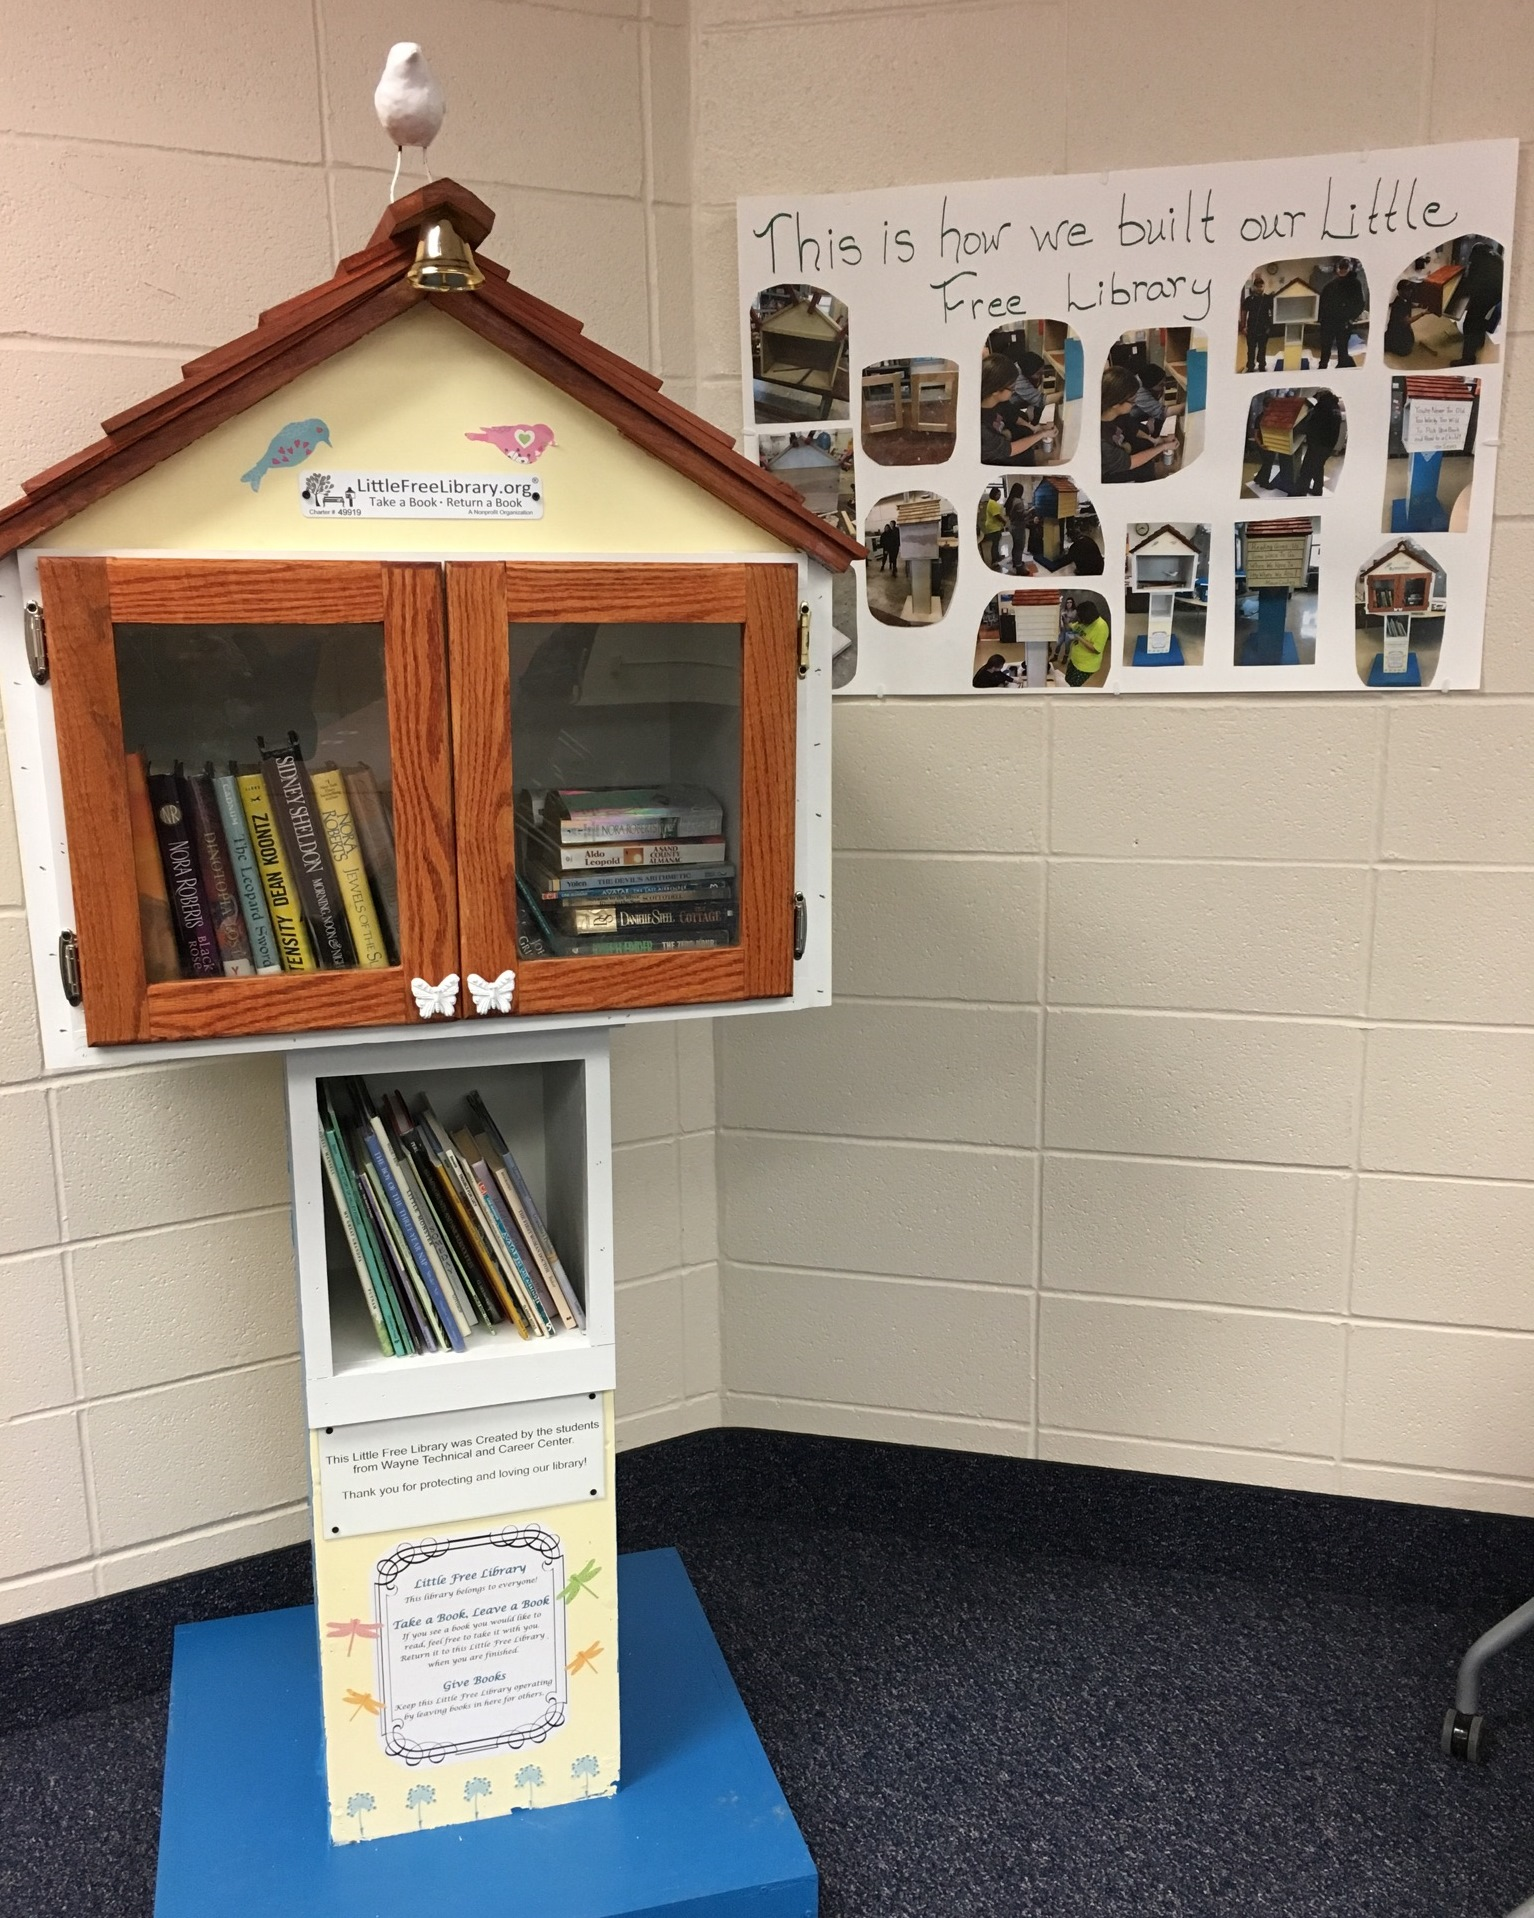 The Little Free Library at WTCC